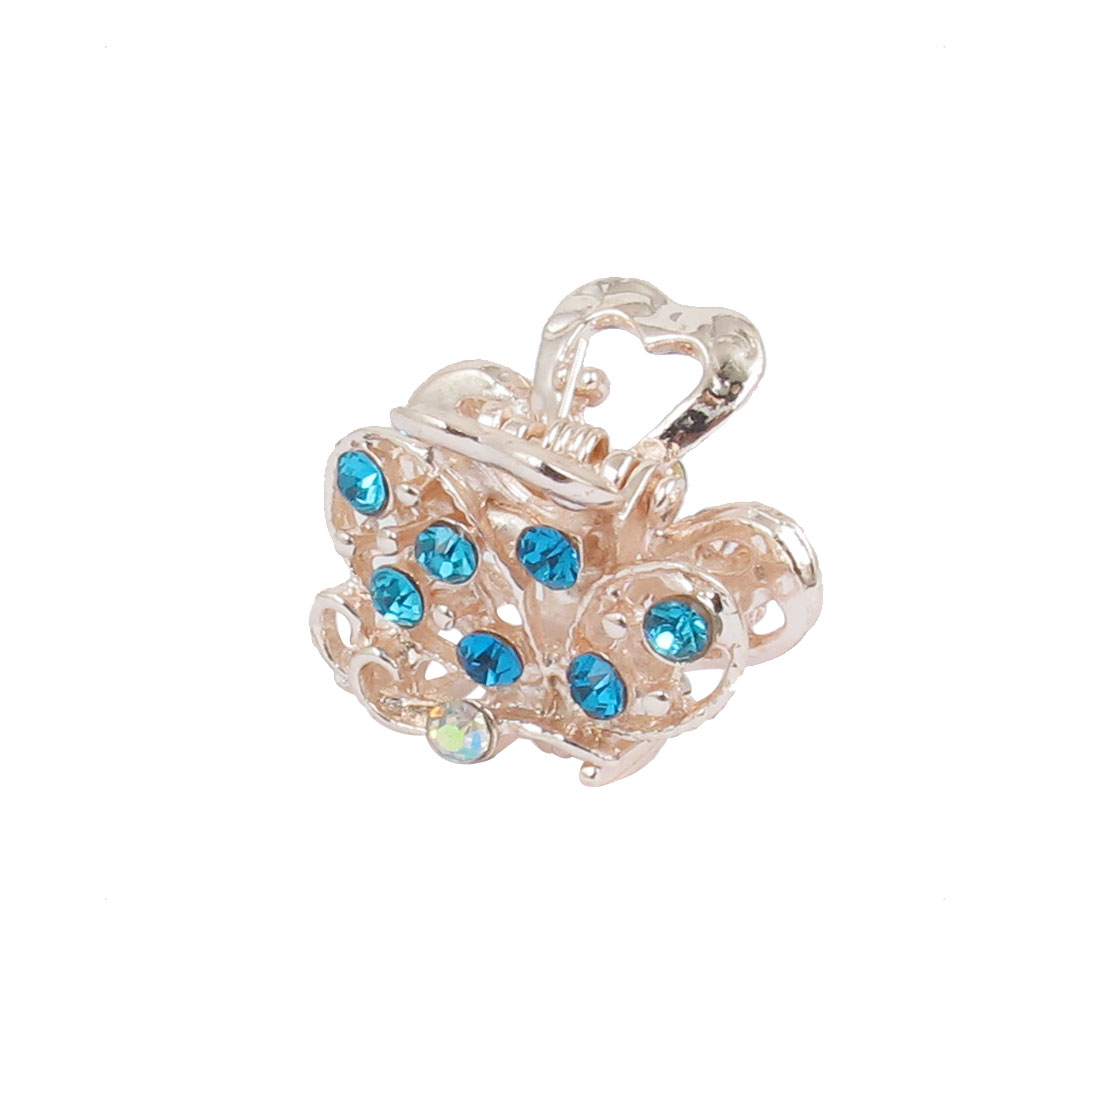 2cm Length Copper Tone Blue Metal Rhinestones Inlaid Jaw Hair Claw Clip Bobby Pins Hairpin Accessories for Woman Girl